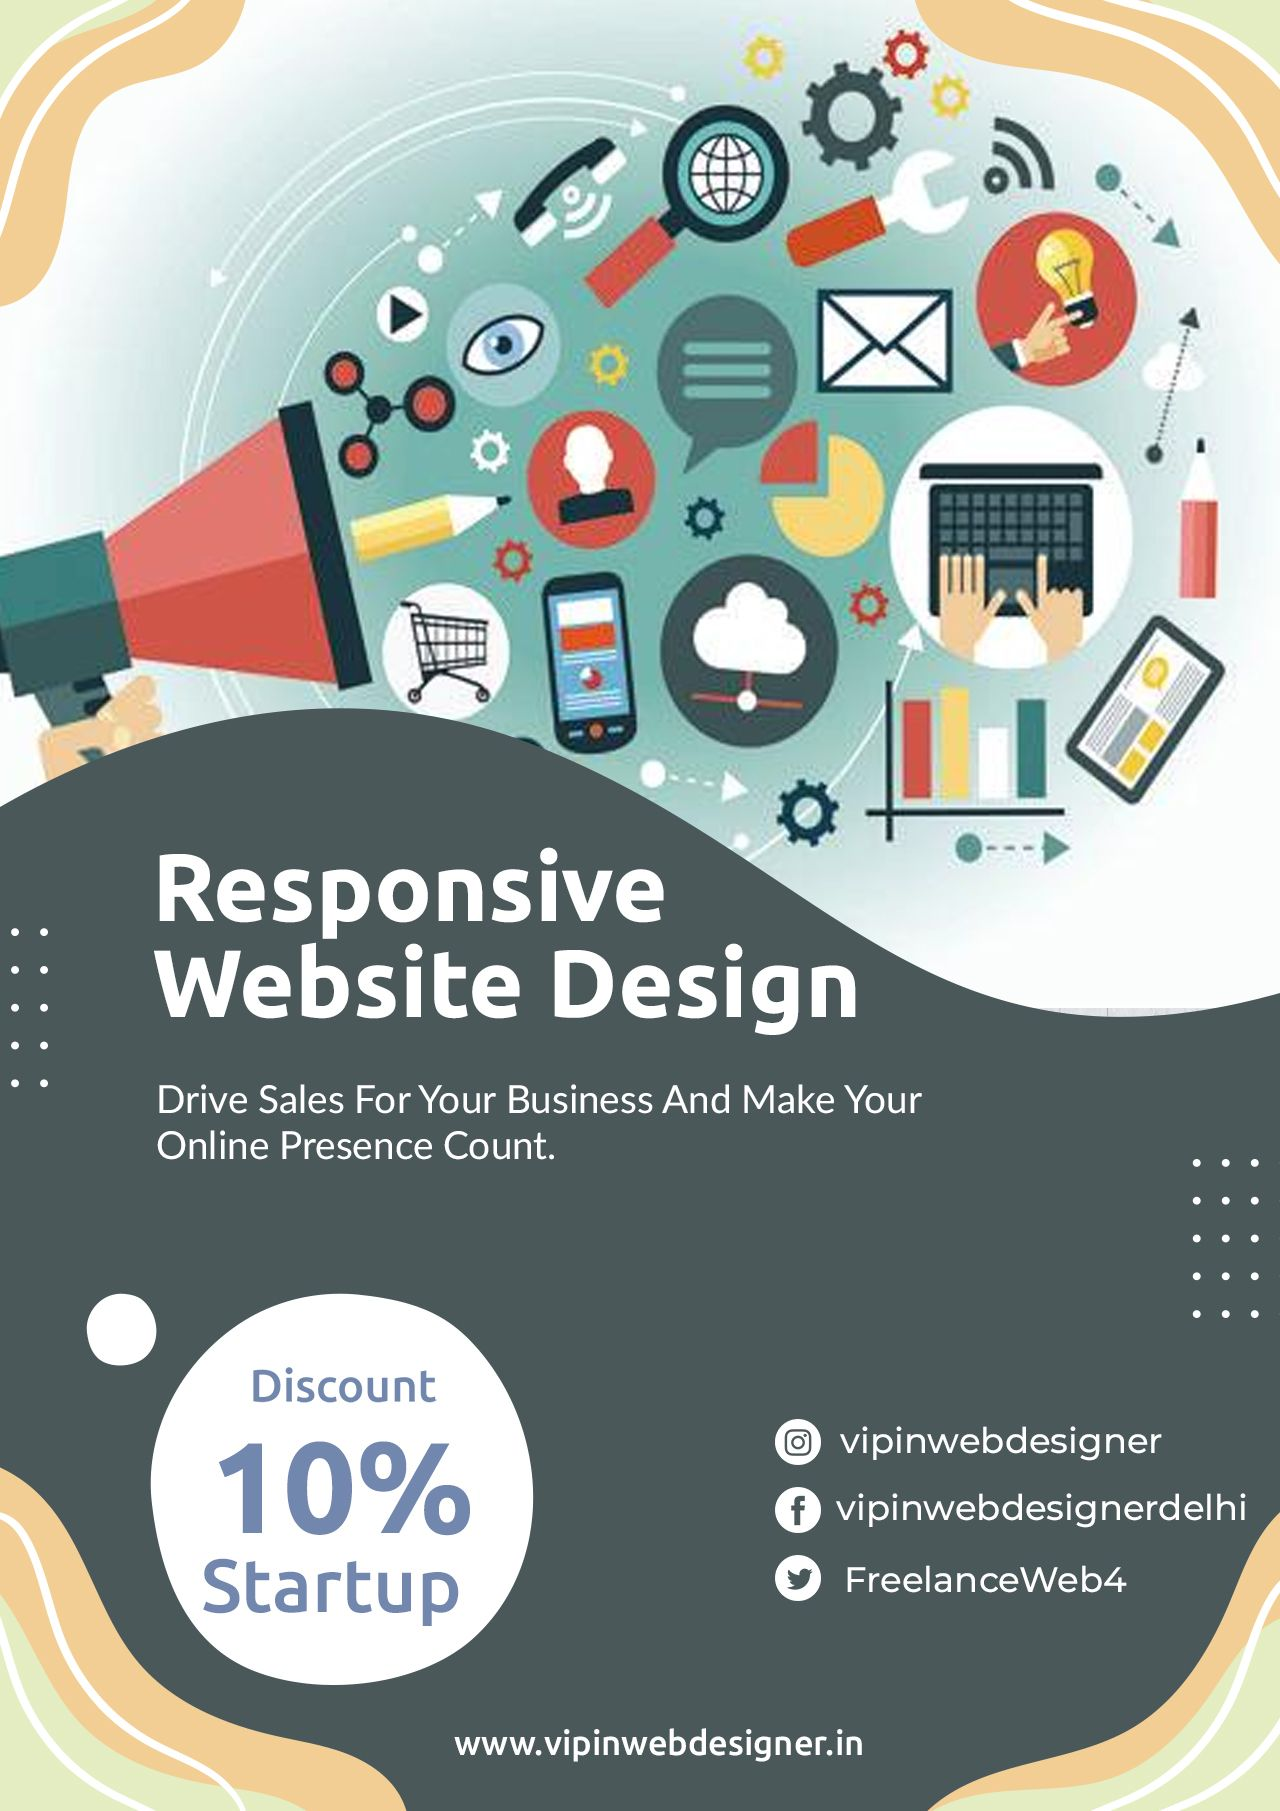 Get All You Need To Start Online A Website Domain Name Professional Email More It S Powerful And In 2020 Responsive Website Design Website Design Learn To Code